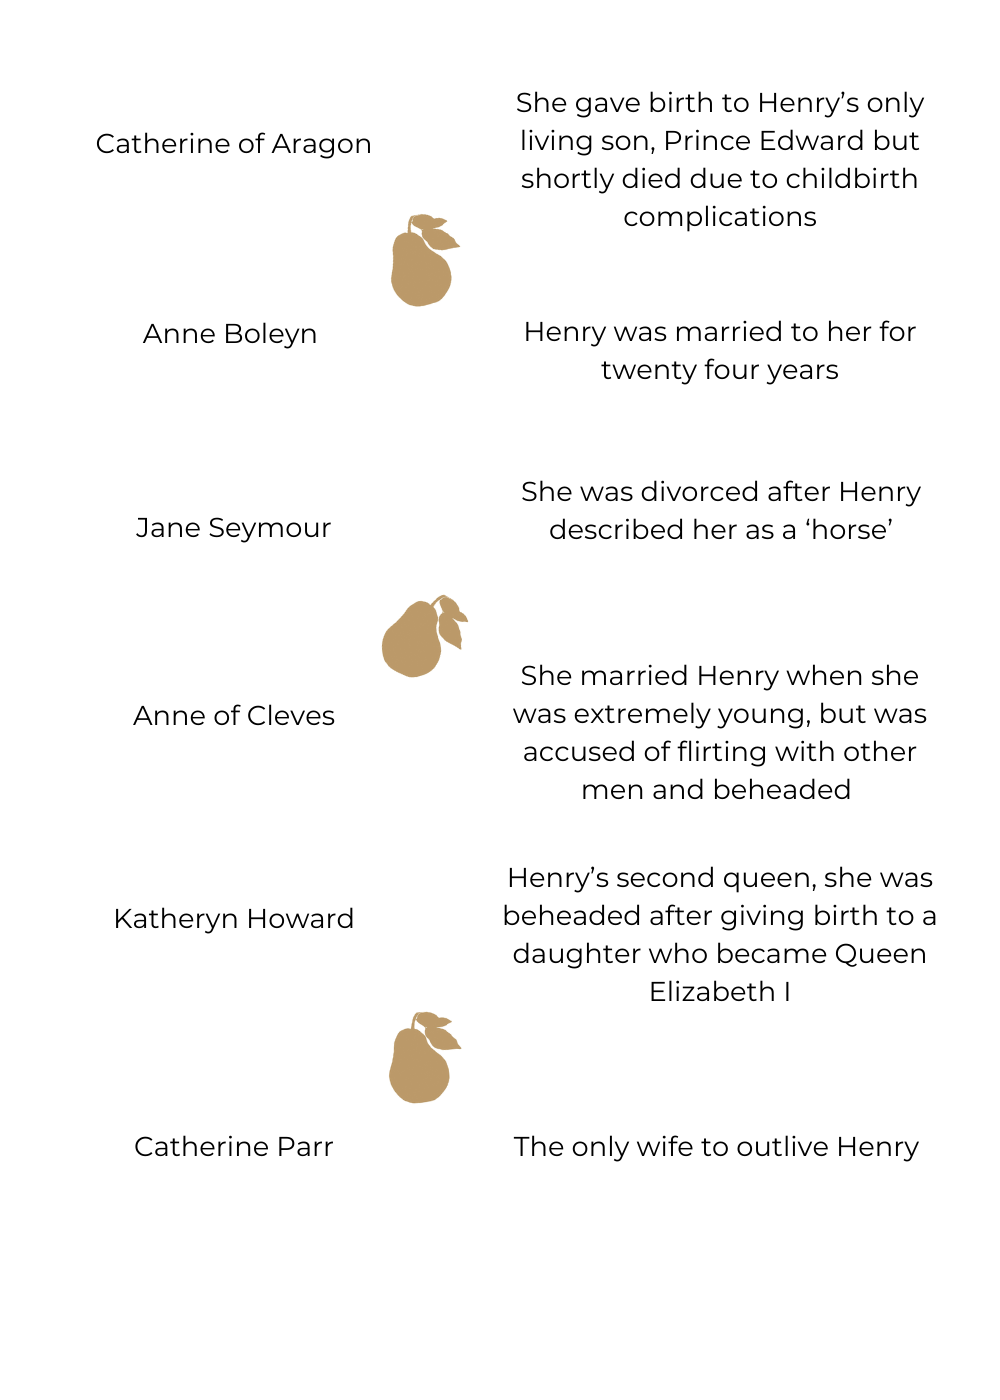 Henry VIII wives historical activity sheet for children. A Girl For All Time dolls, books and gifts. Matilda Your Tudor Girl is part of a range of historical 16 inch dolls from A Girl For All Time. Not associated with American Girl or Our Generation dolls.